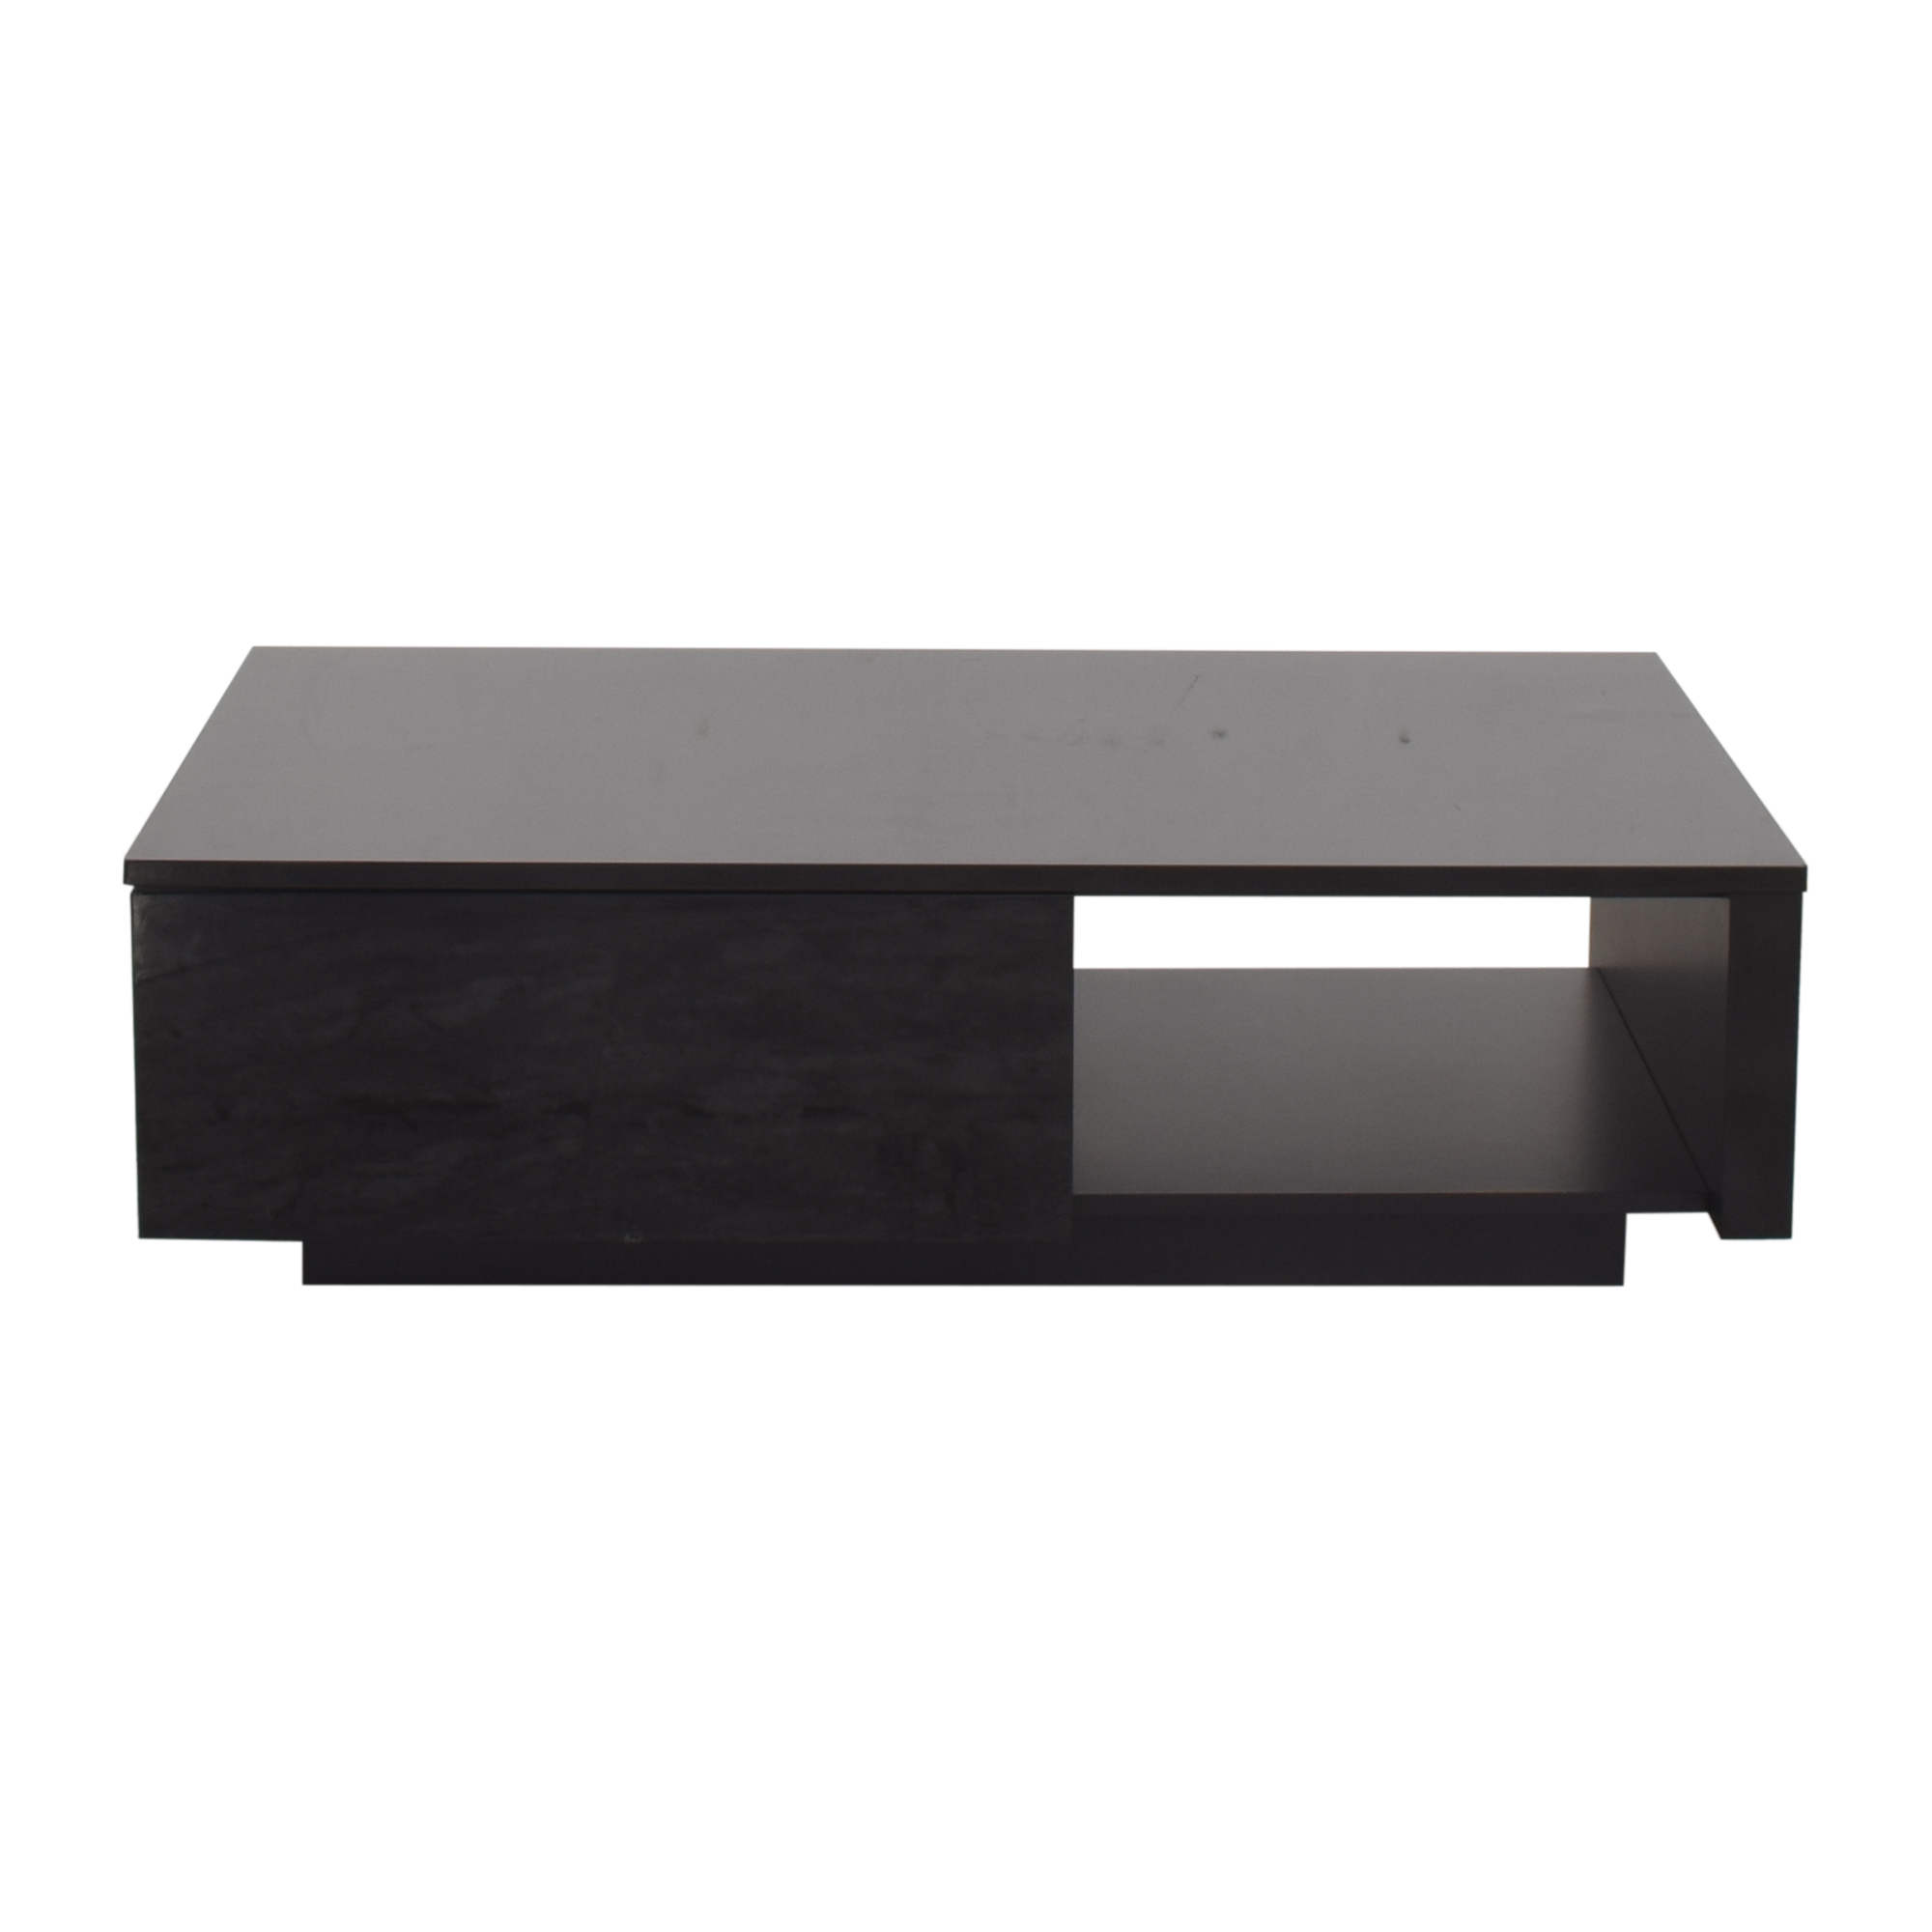 Tema Temahome Axis Coffee Table nyc